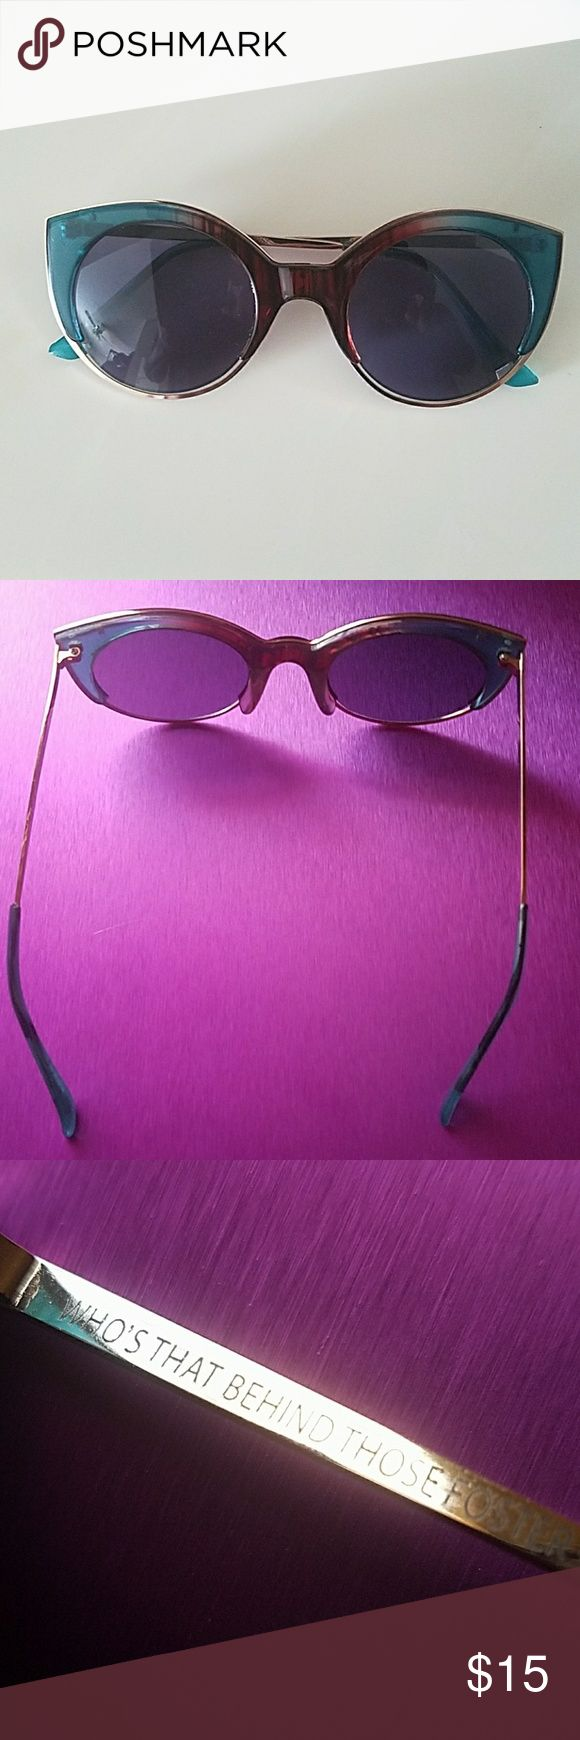 Foster Grant sunglasses Turquiose & Brown with gold wire frame. No imperfections Foster Grant Accessories Glasses